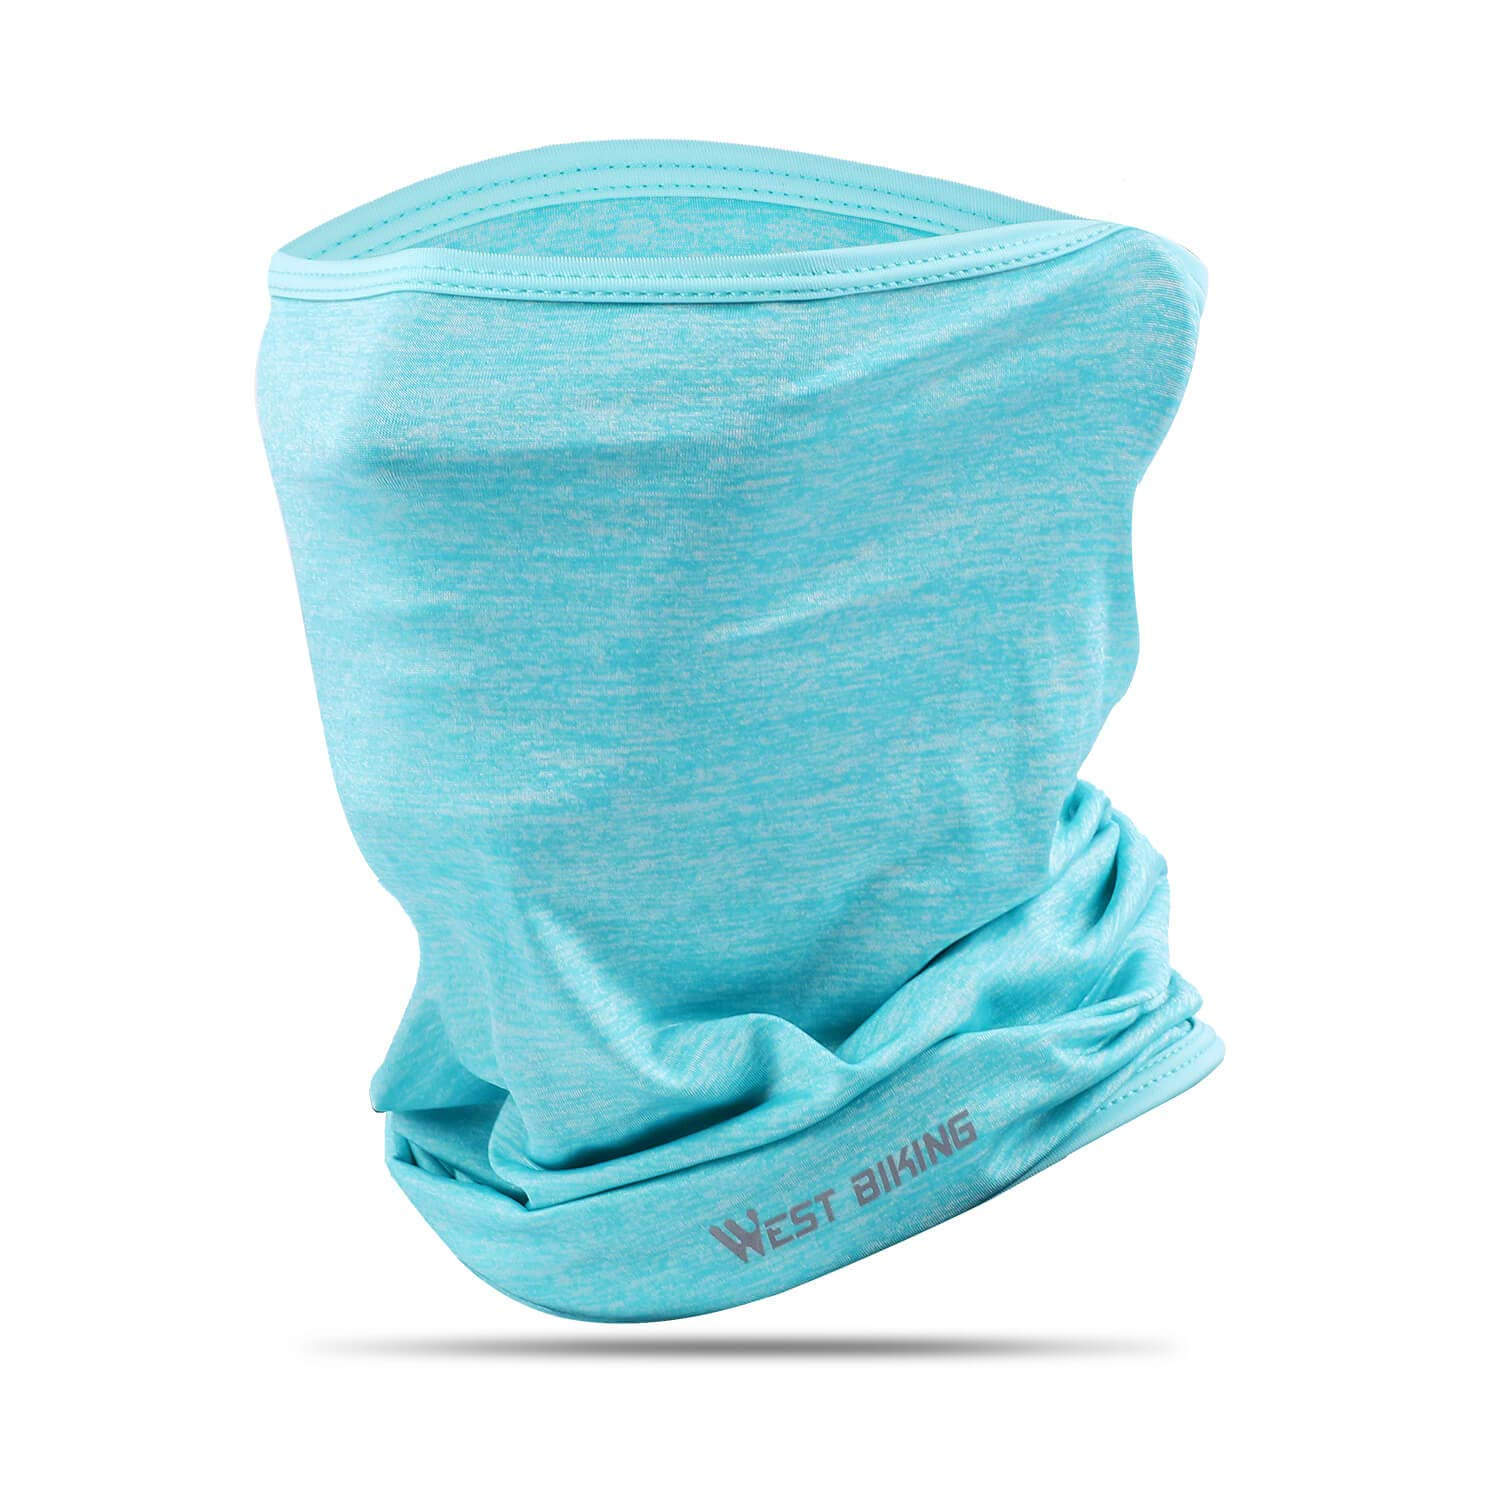 Ice Silk Breathable Balaclava, Versatile Face Mask Neck Gaiter, Riding Running Headwear for UV Wind Dust